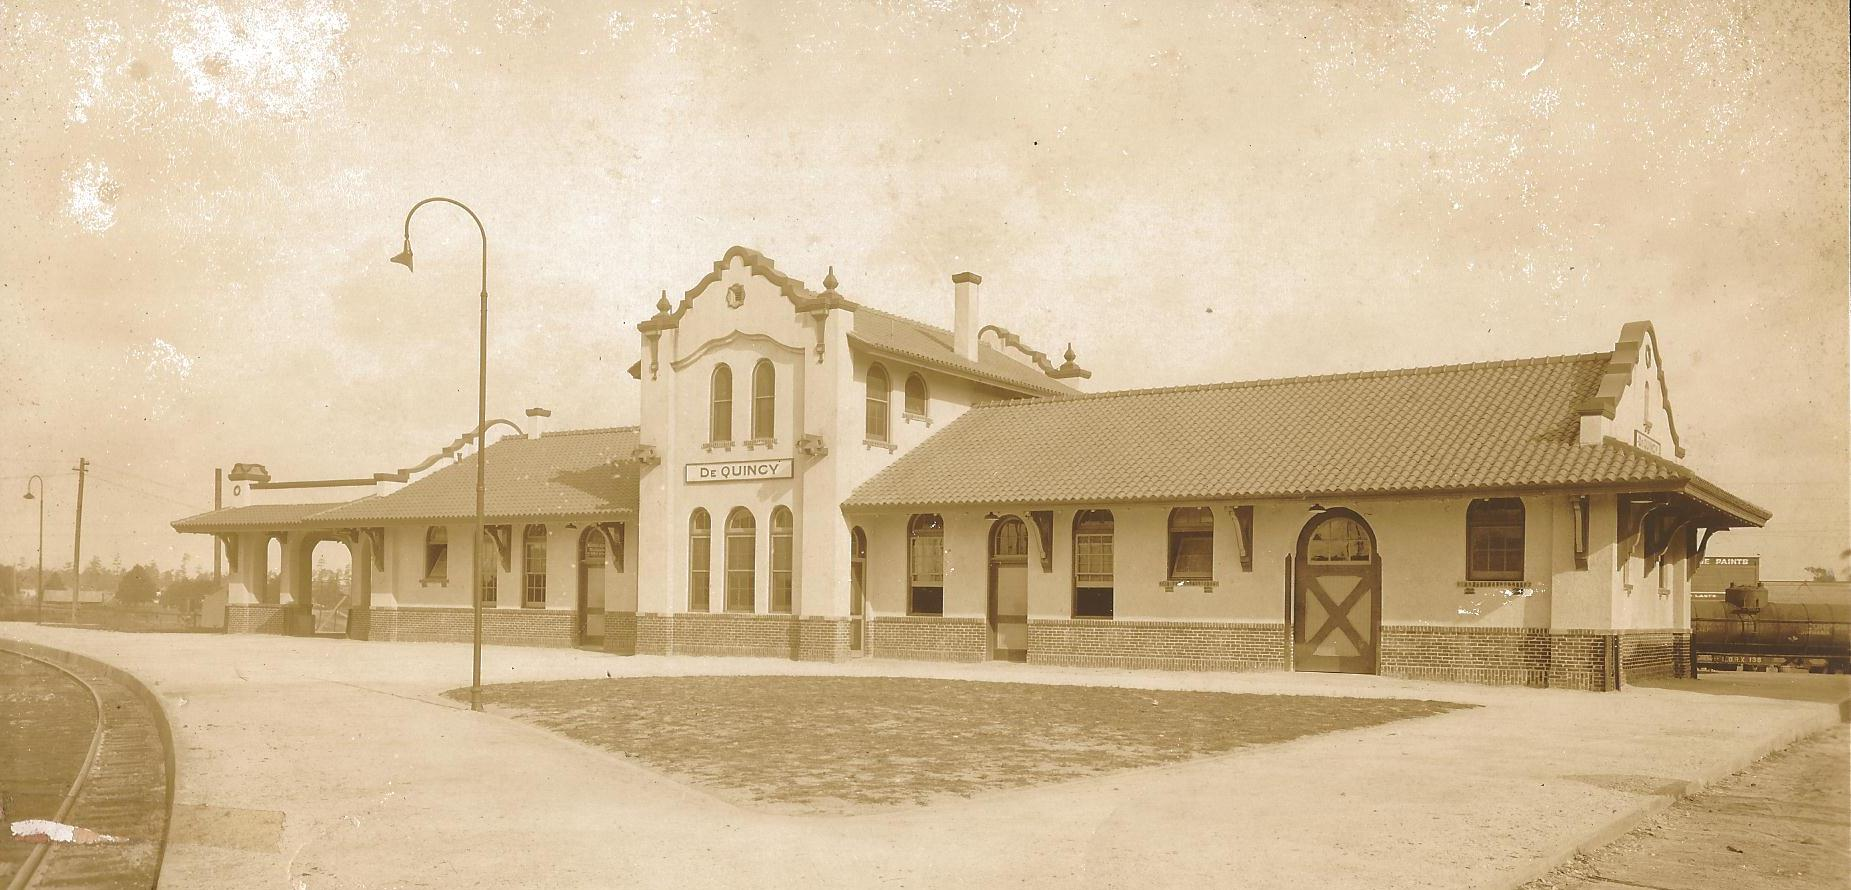 DeQuincy Railroad Museum shortly after it was built in 1923